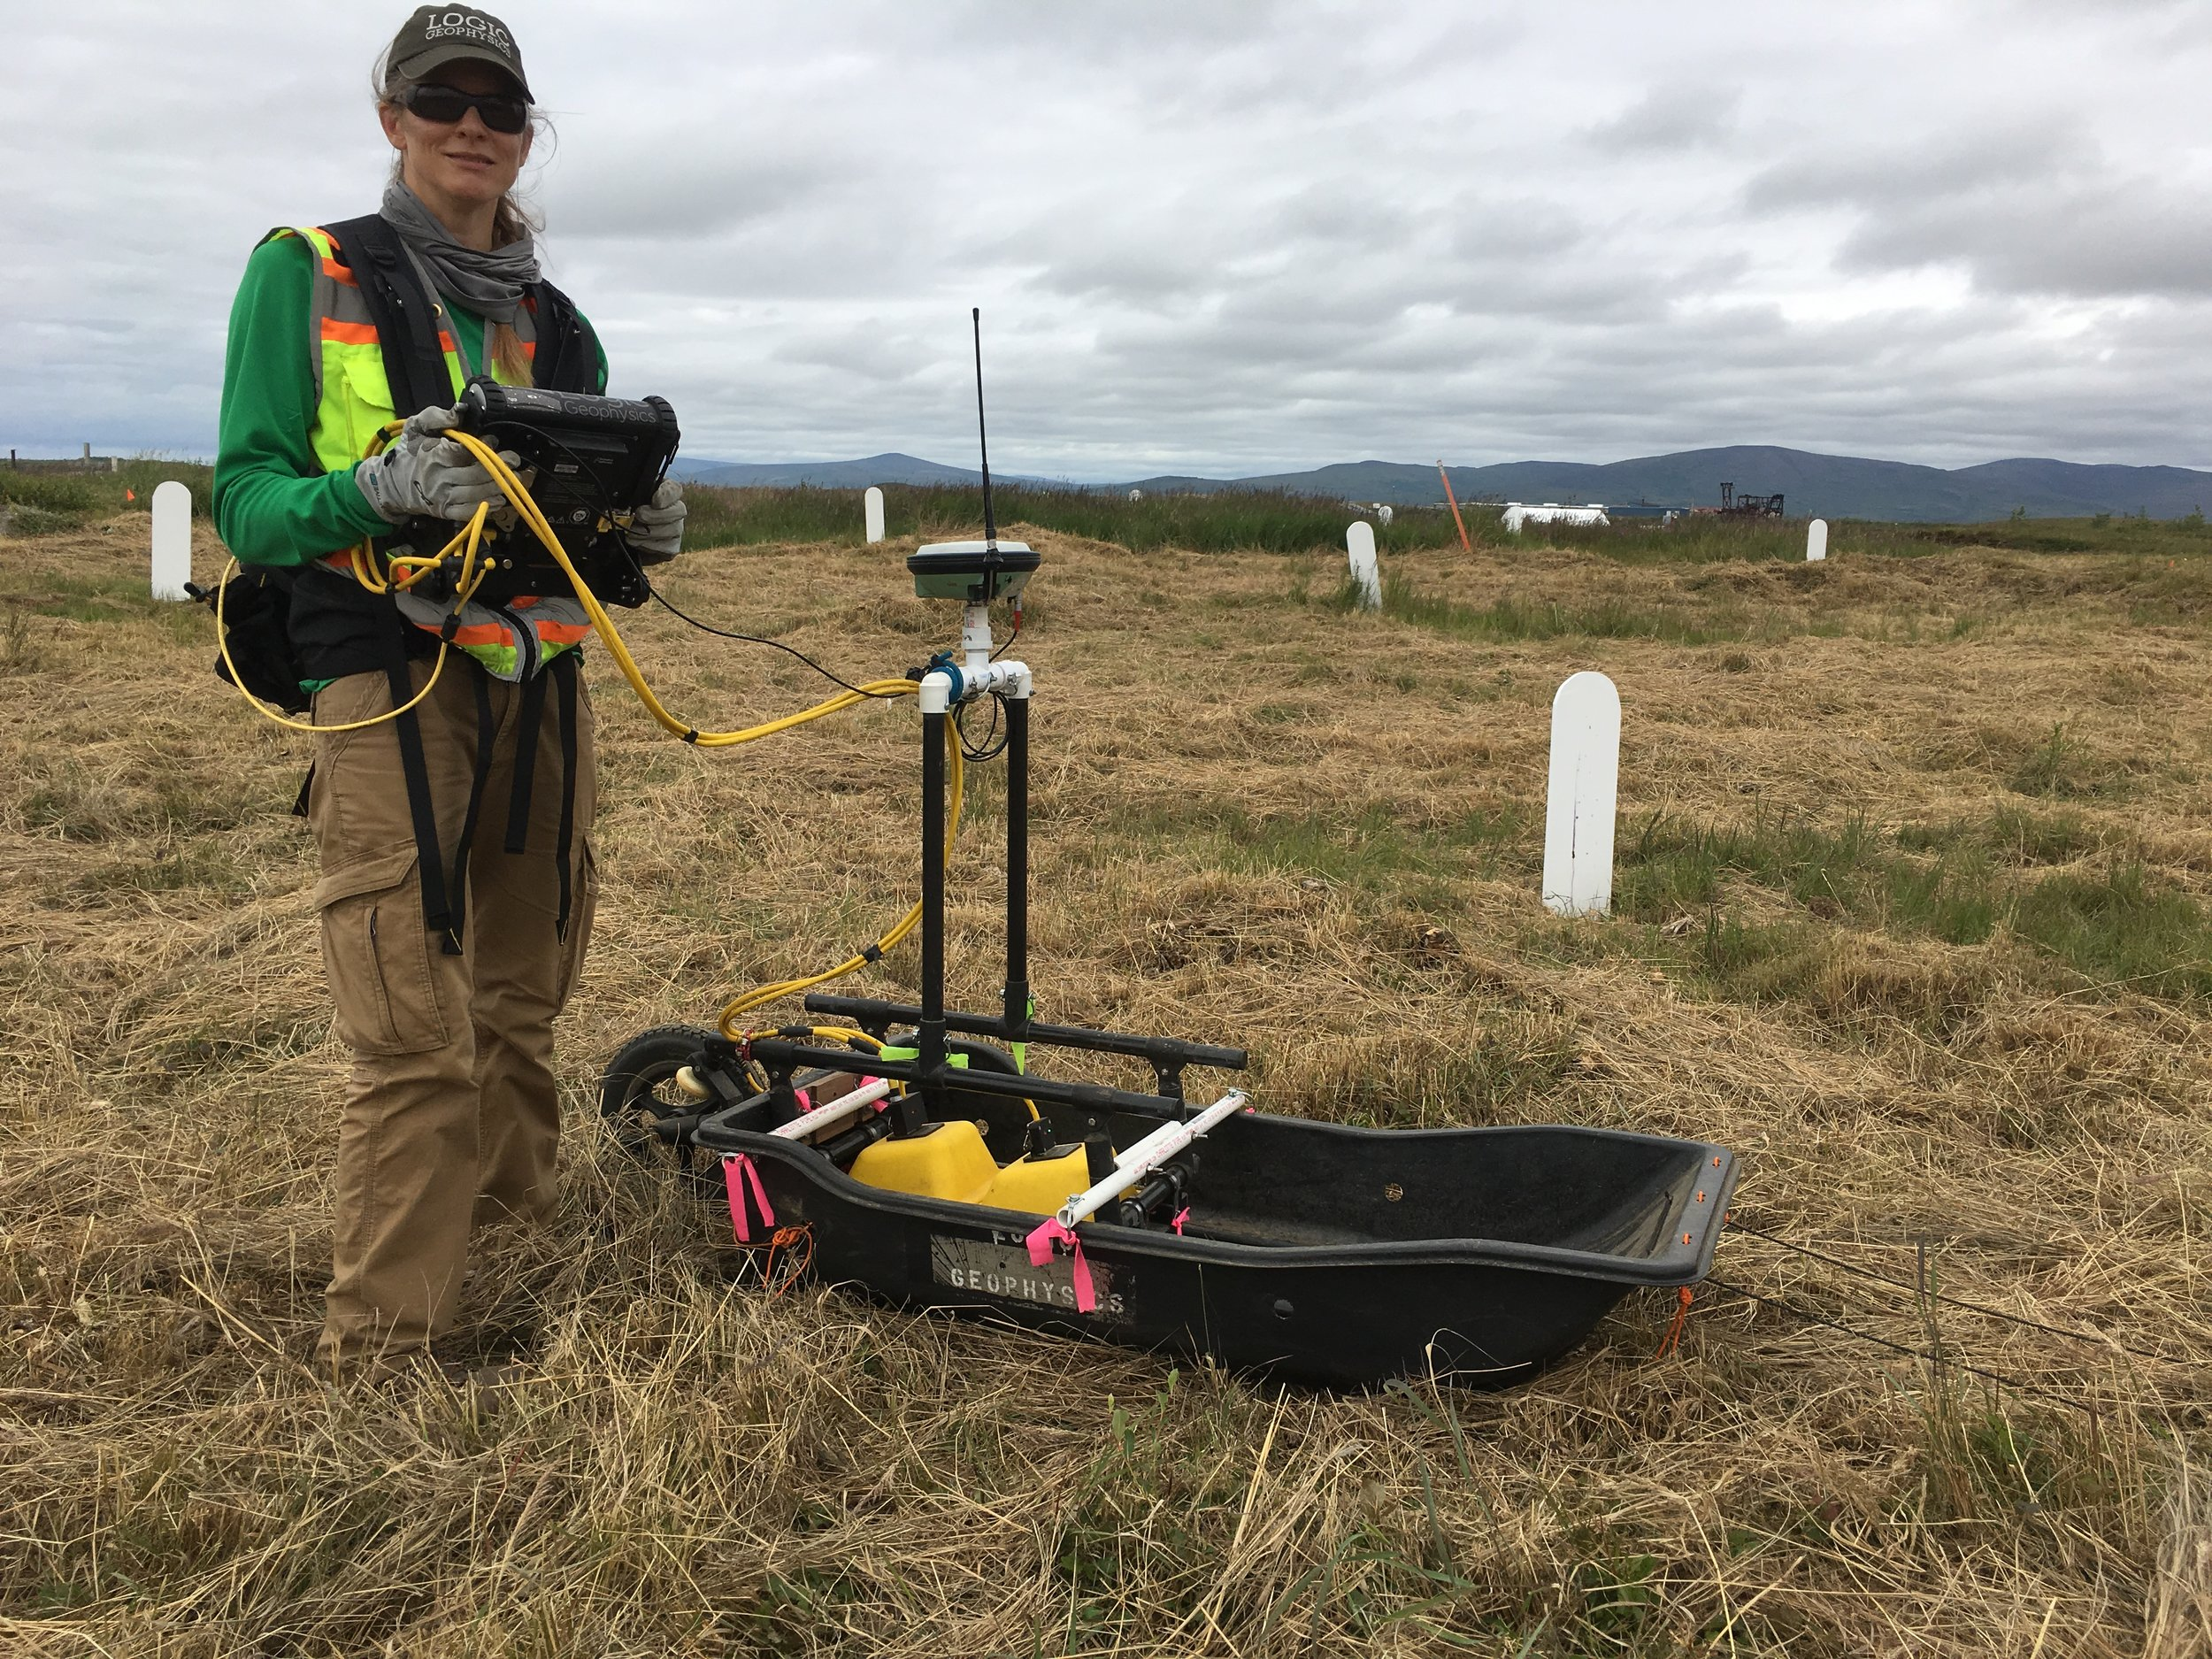 Using a sled for grave detection on tundra and tussocks